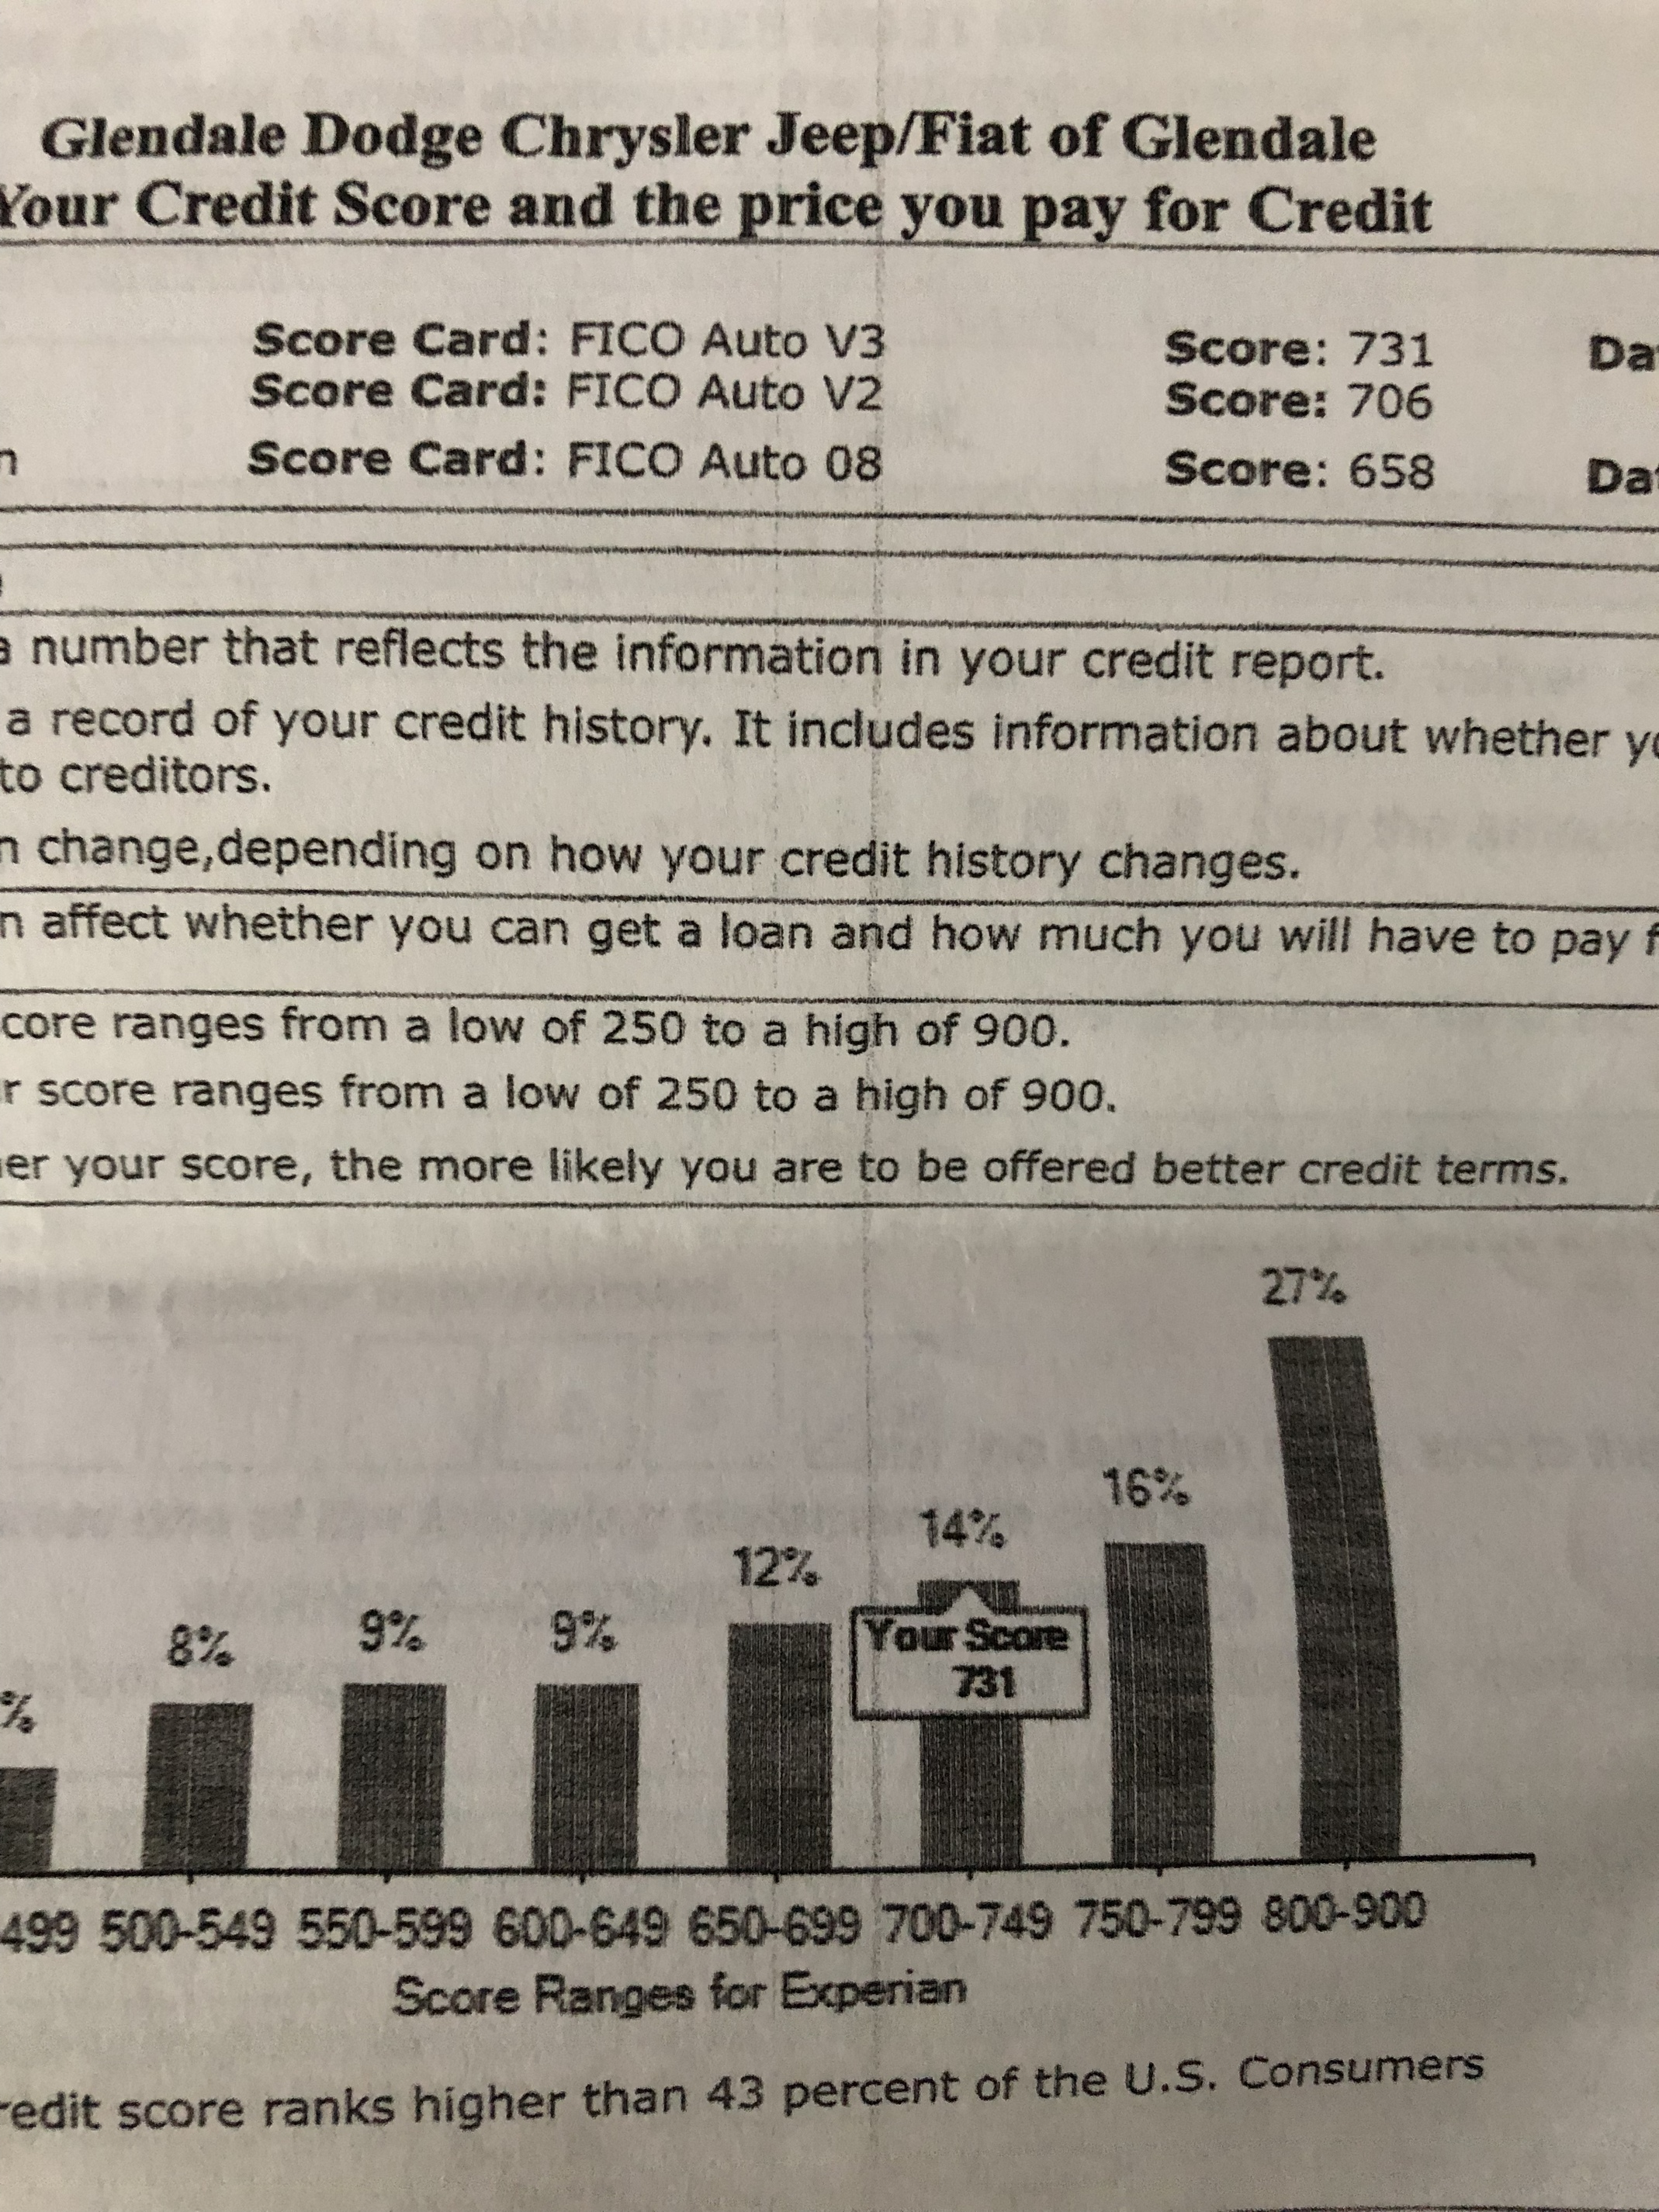 Credit Score Tiers >> Ally credit score tiers - Ask the Hackrs - Leasehackr Forum